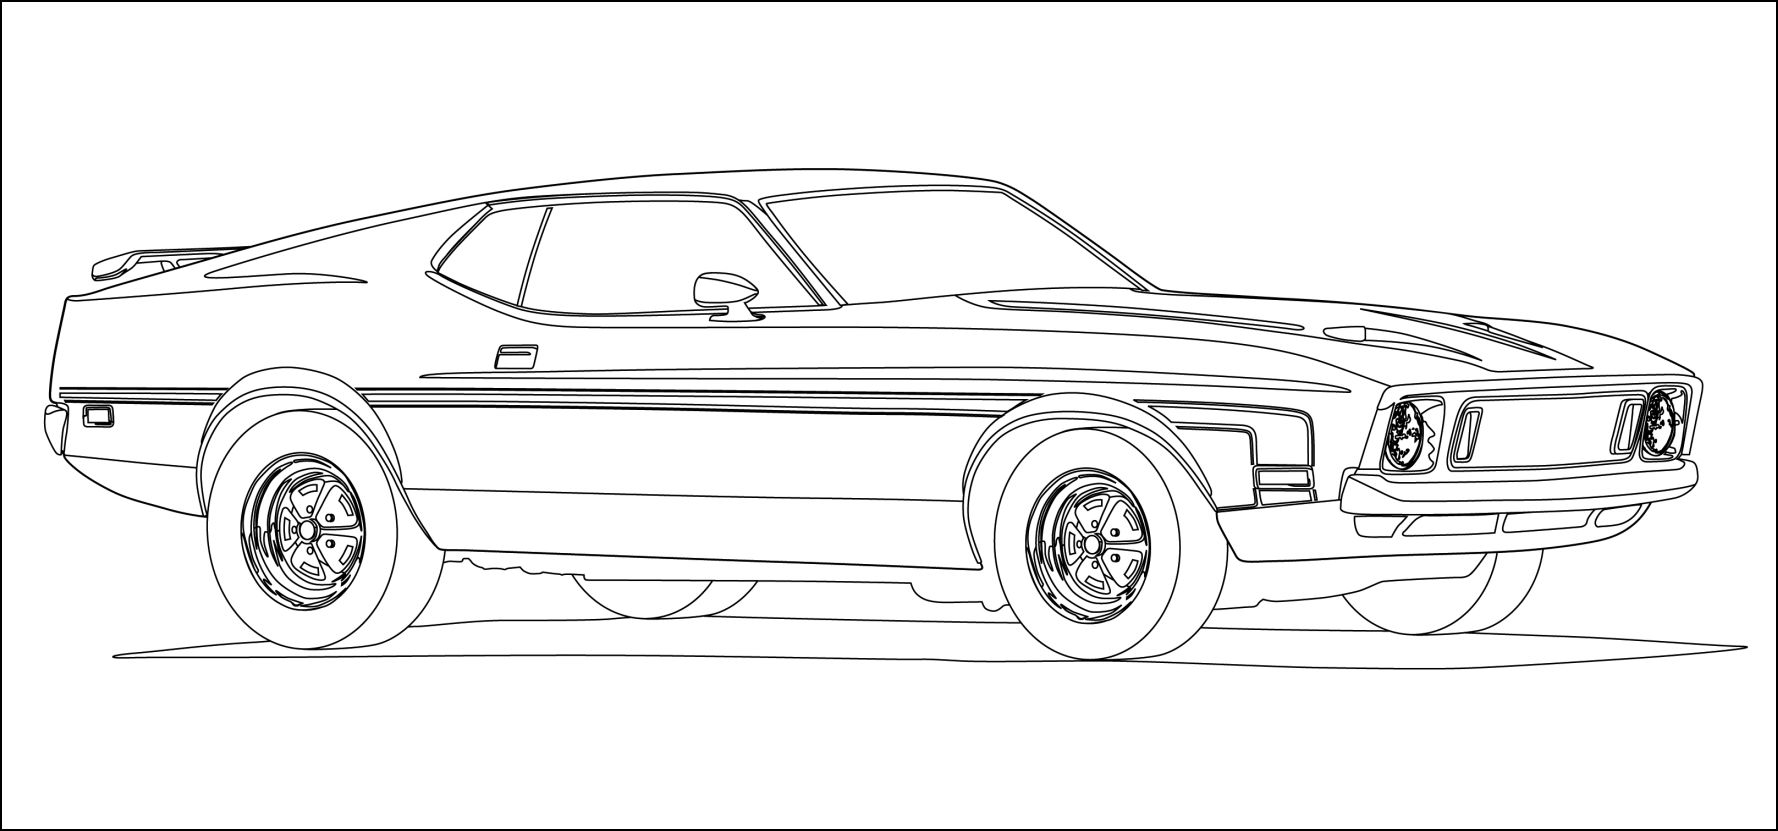 2011 Ford Mustang Coloring Pages 01